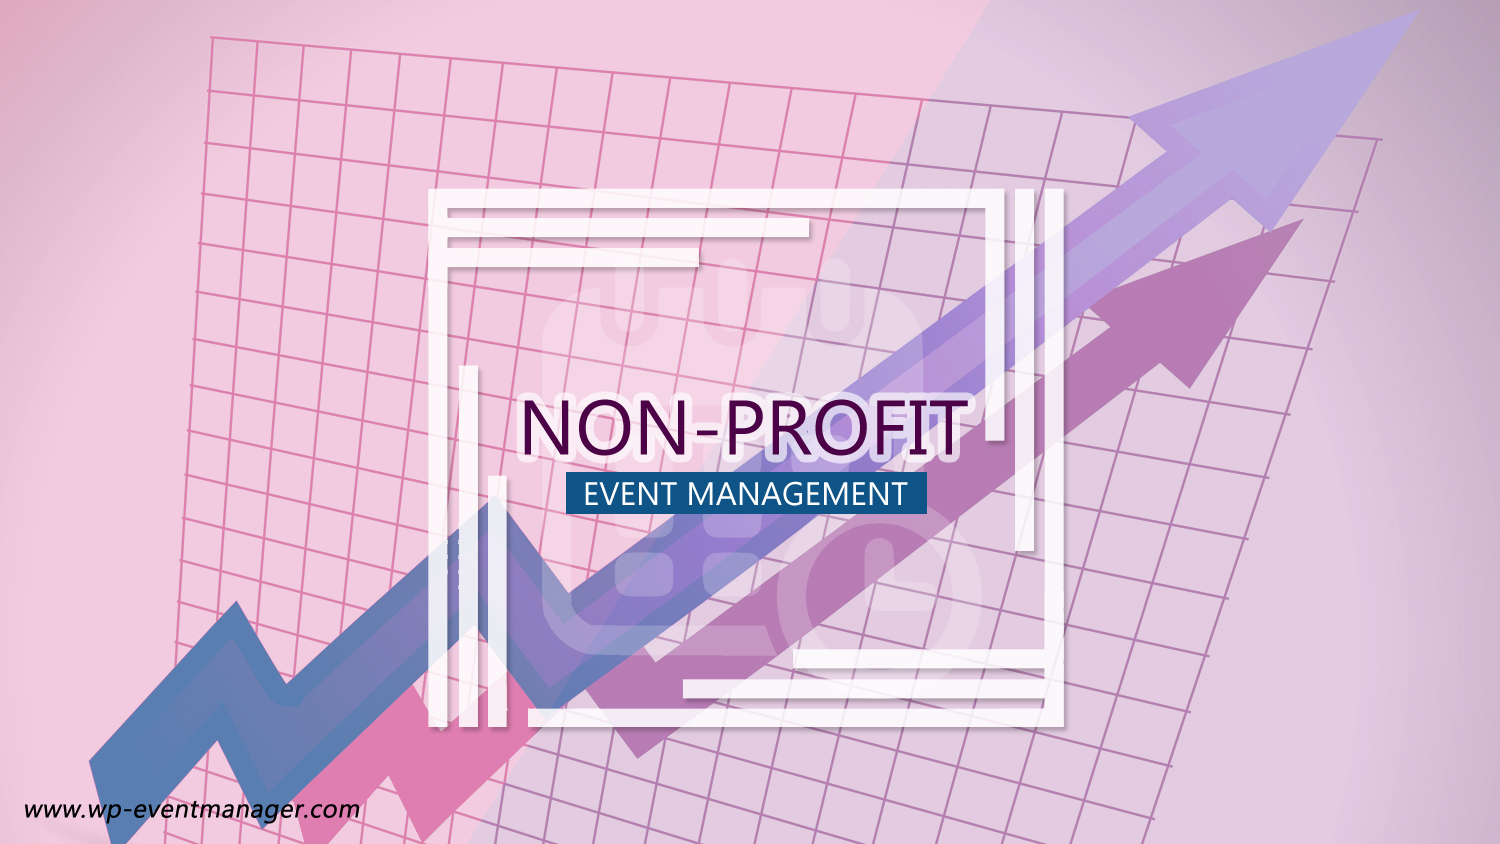 Non-profit event management